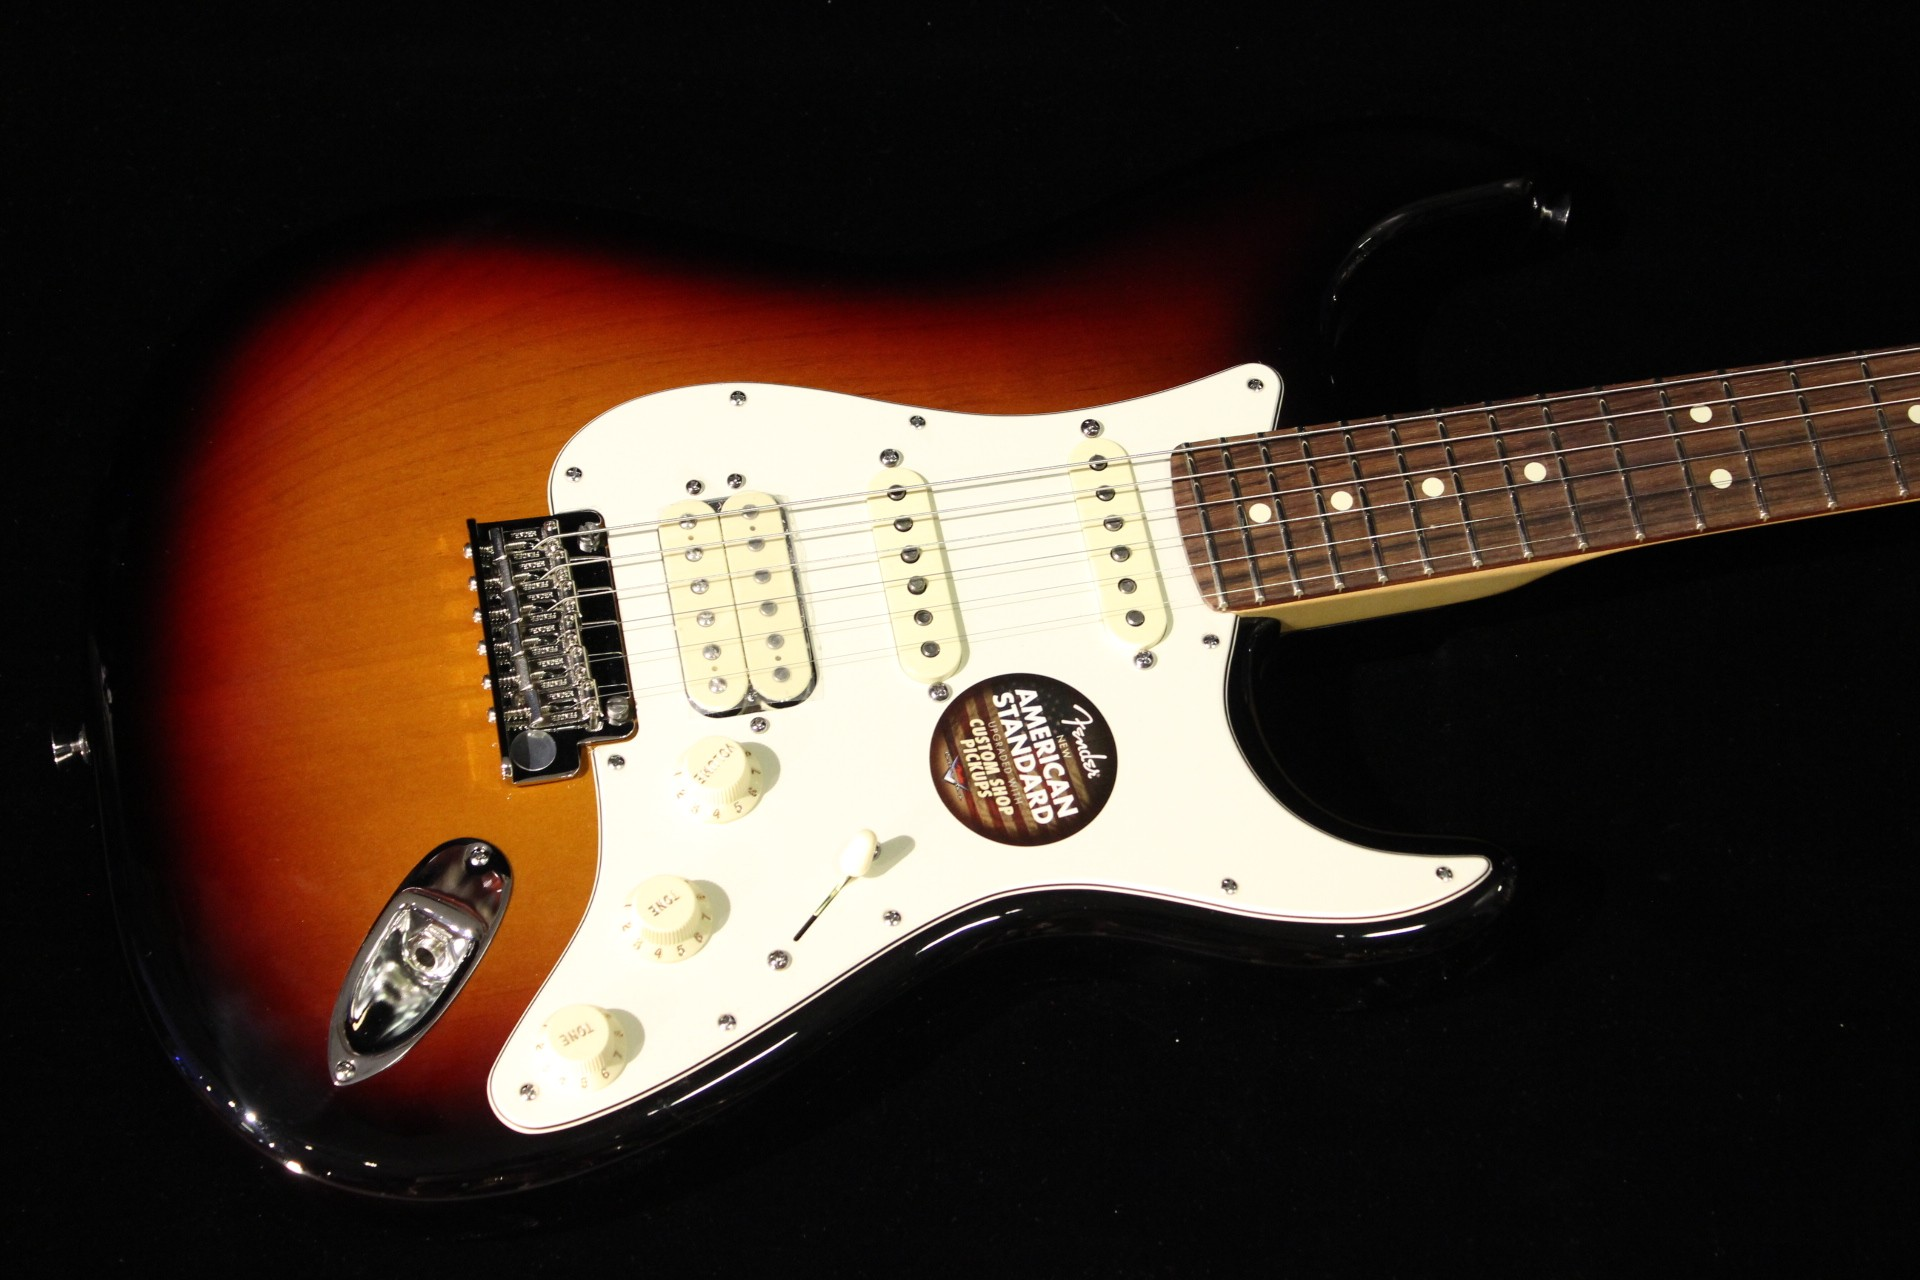 fender american standard stratocaster hss 3 color sunburst gino guitars. Black Bedroom Furniture Sets. Home Design Ideas